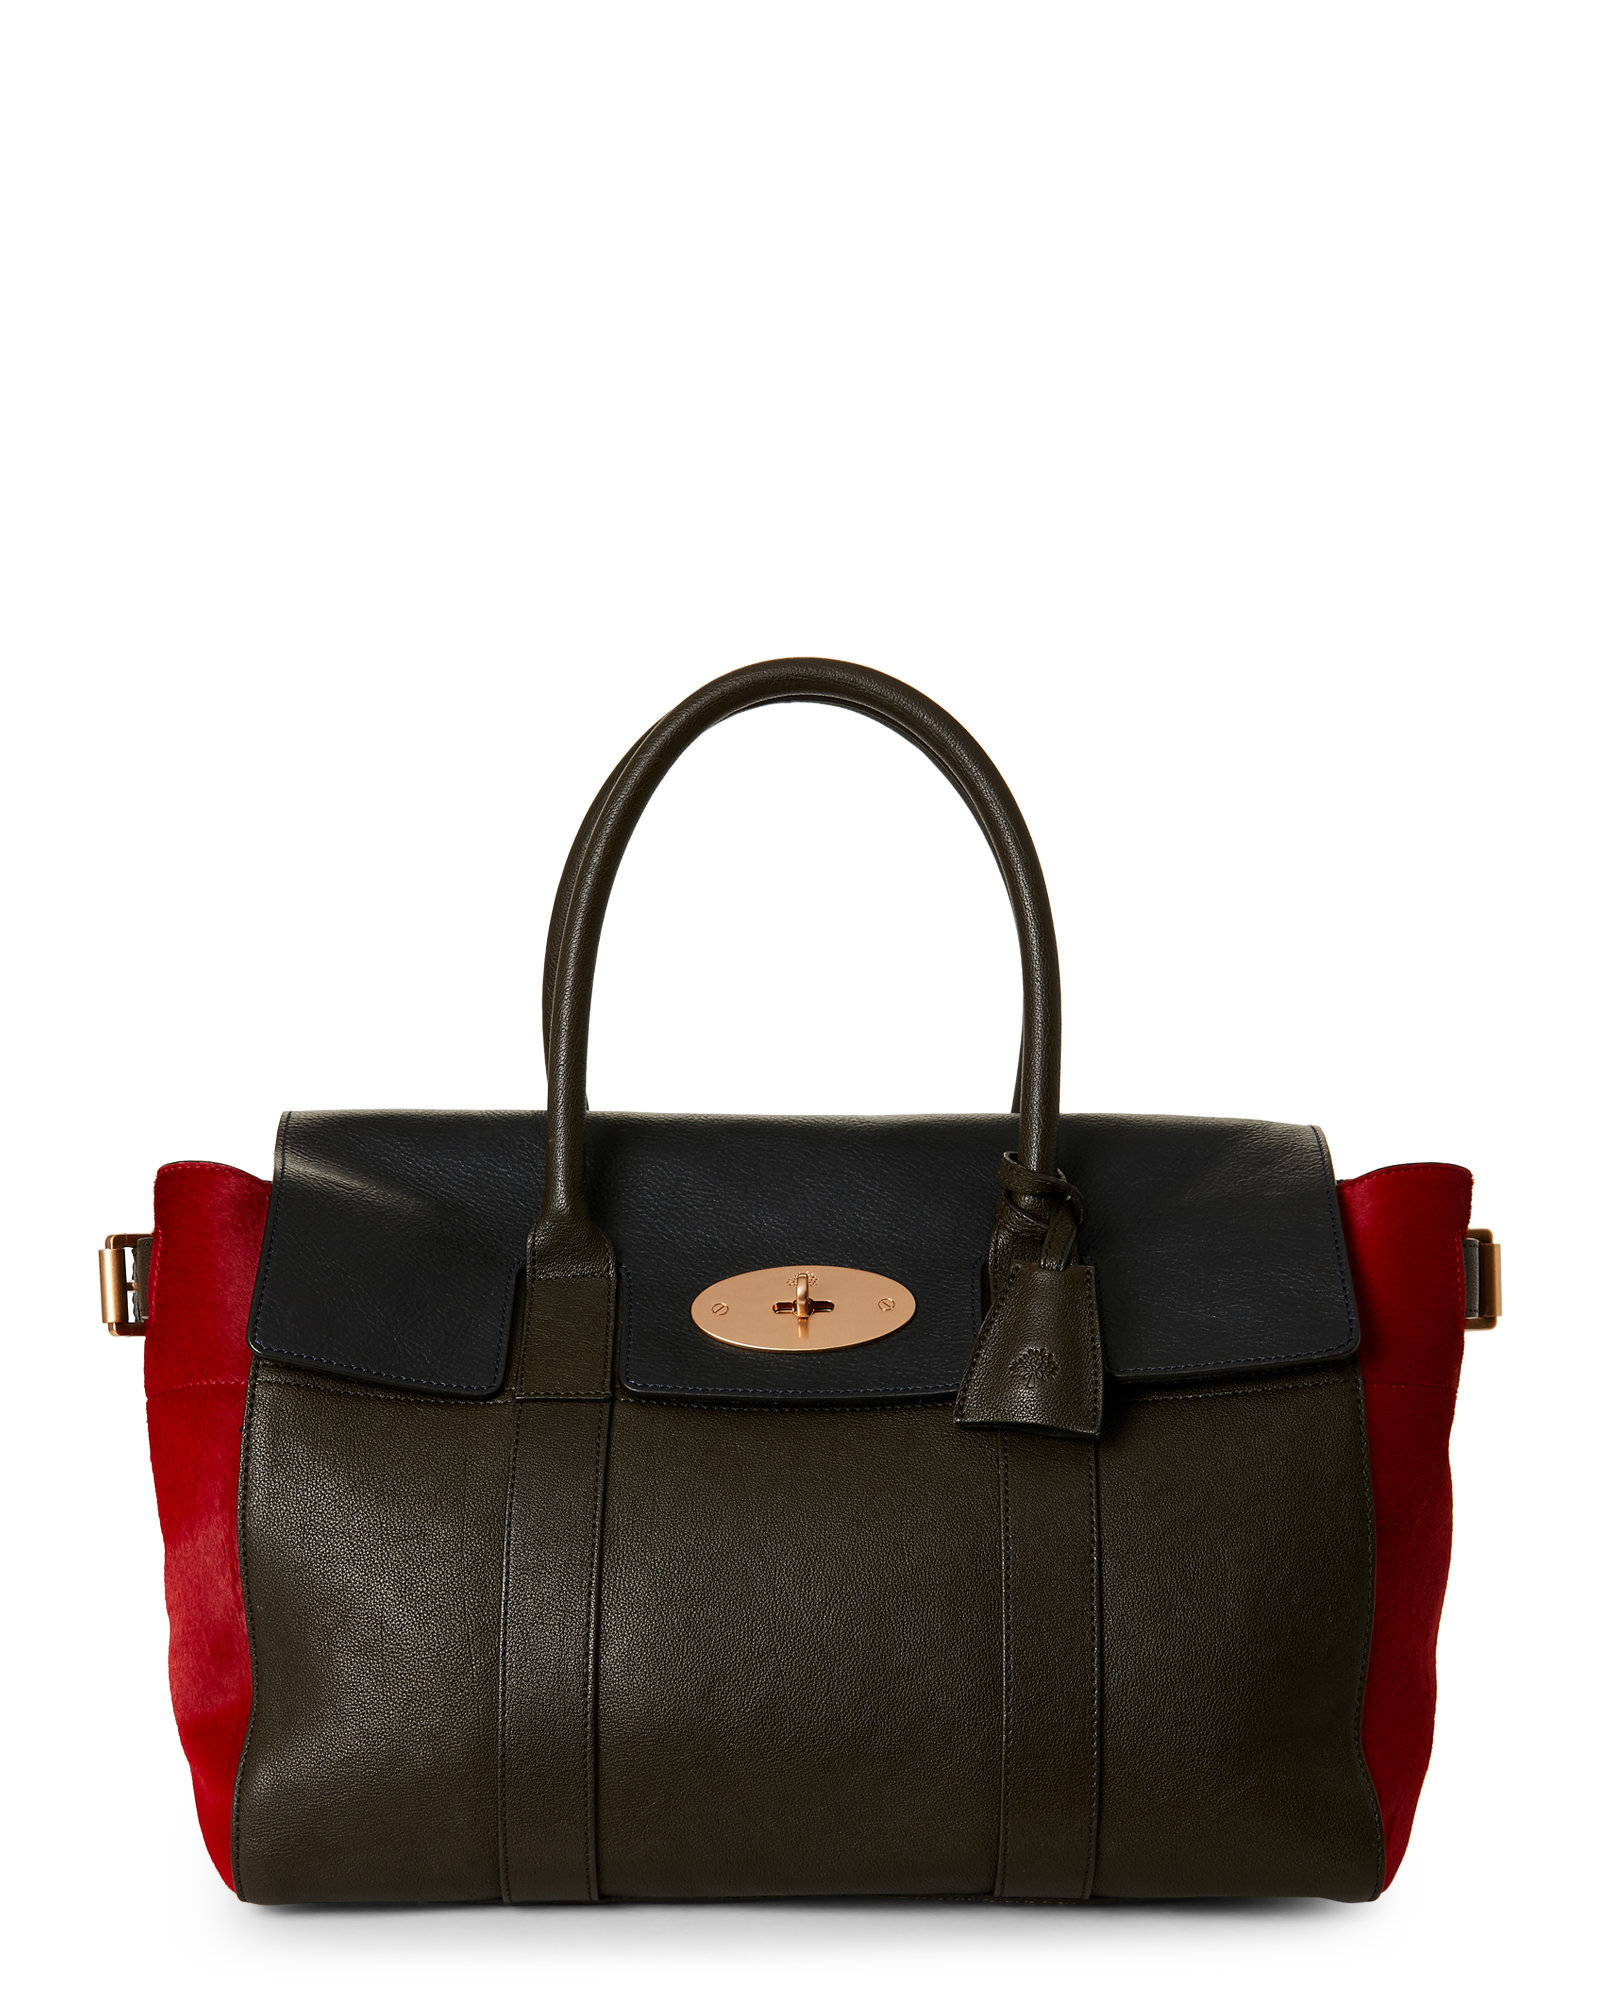 3d7bc29a433f Lyst - Mulberry Bayswater Leather   Calf Hair Color Block Top Handle Bag